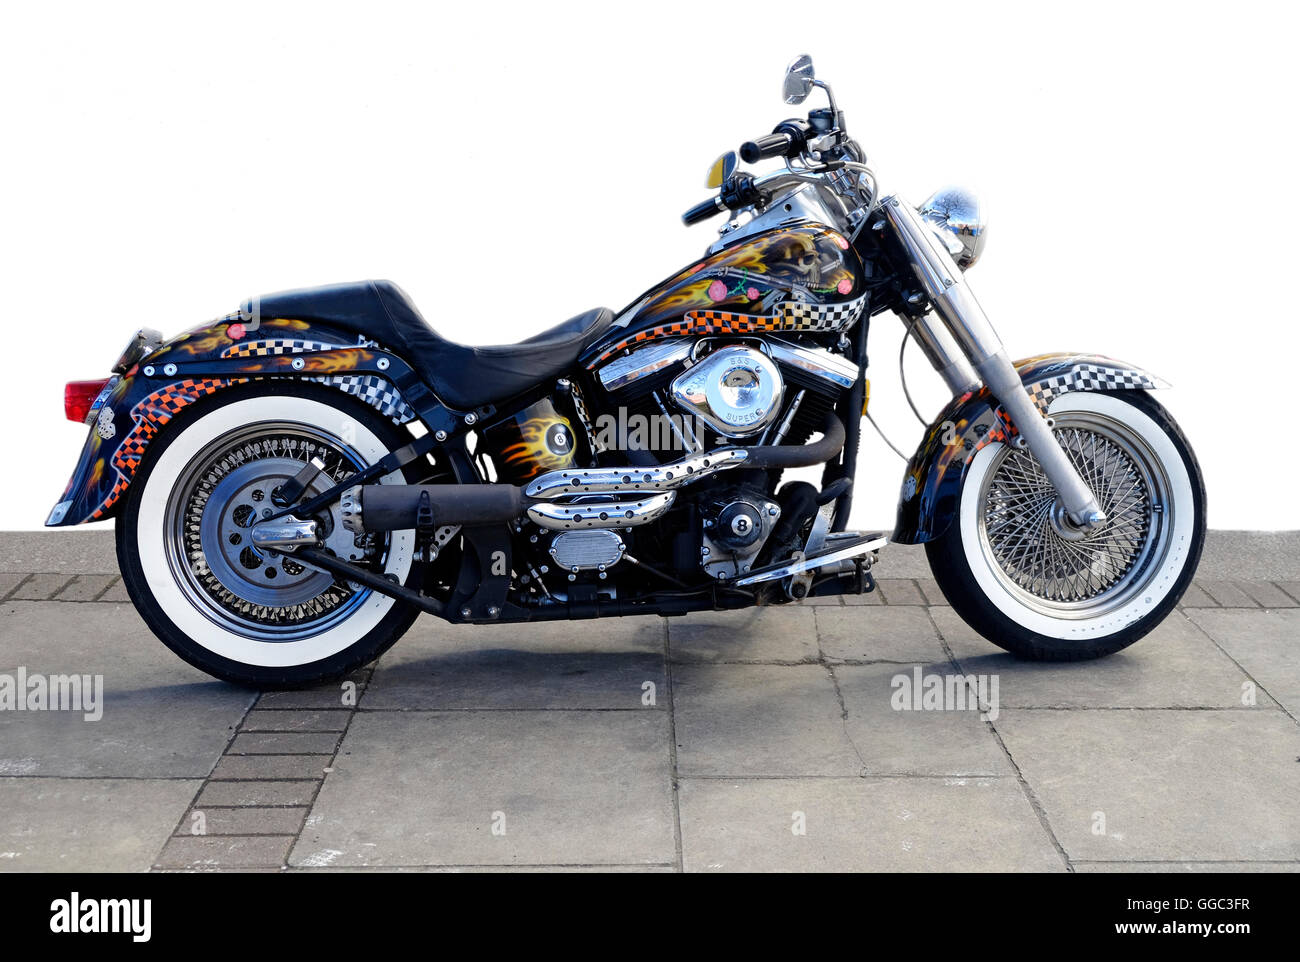 A highly customized Harley Davidson Motorcycle parked on a Dublin street, shown as a partial cut-out - Stock Image